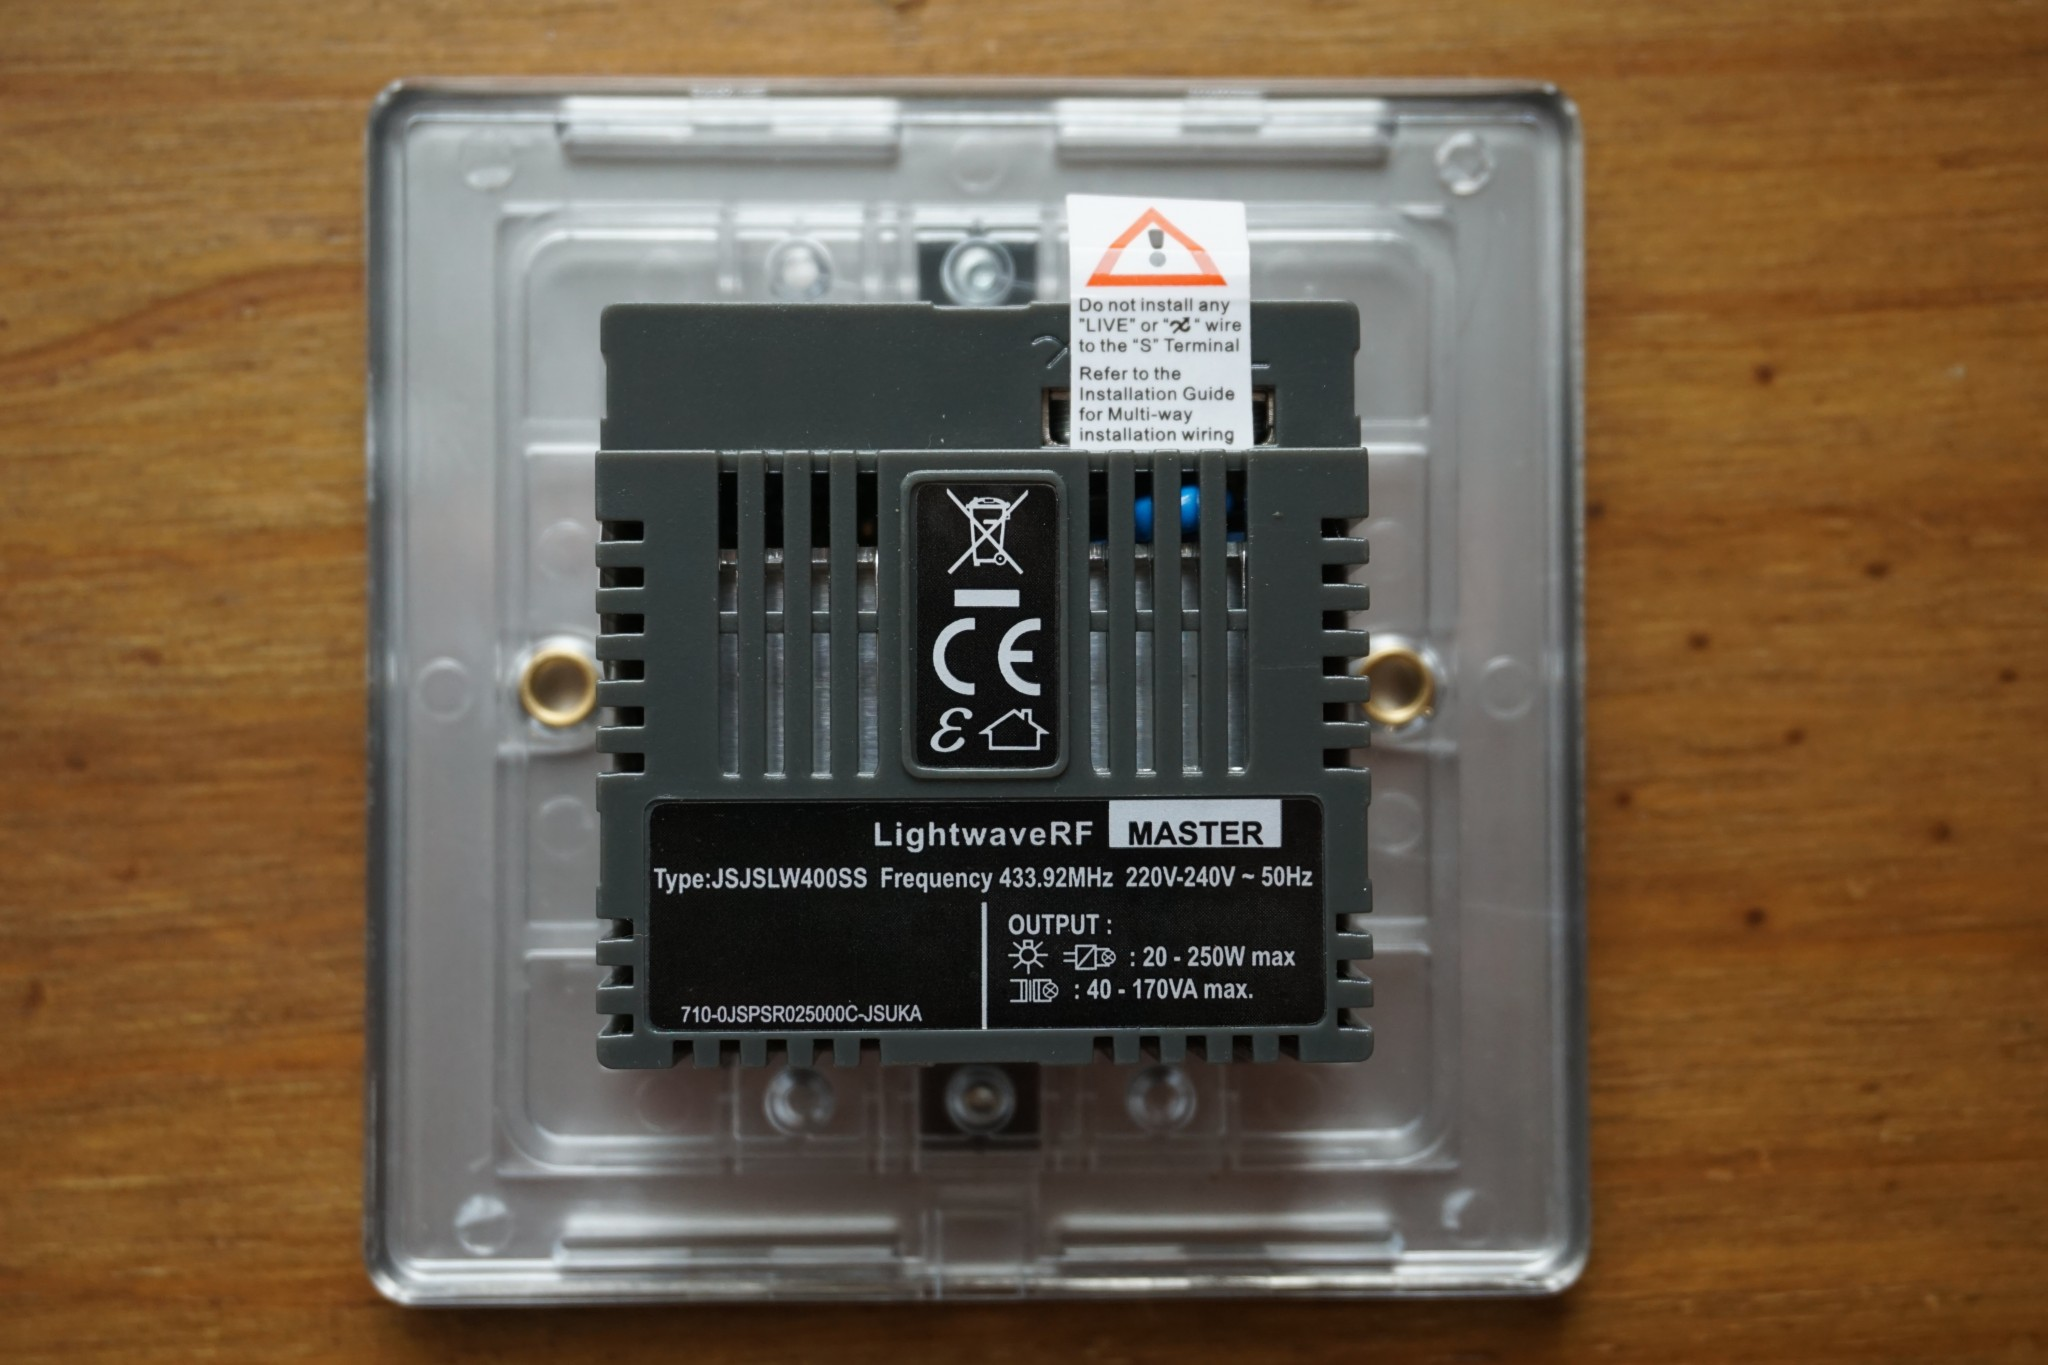 Lightwaverf Home Automation Kit Reviewed Irish Tech News Fitting Dimmer Switch To Old Electrical Wiringdimmerinstructionsjpg